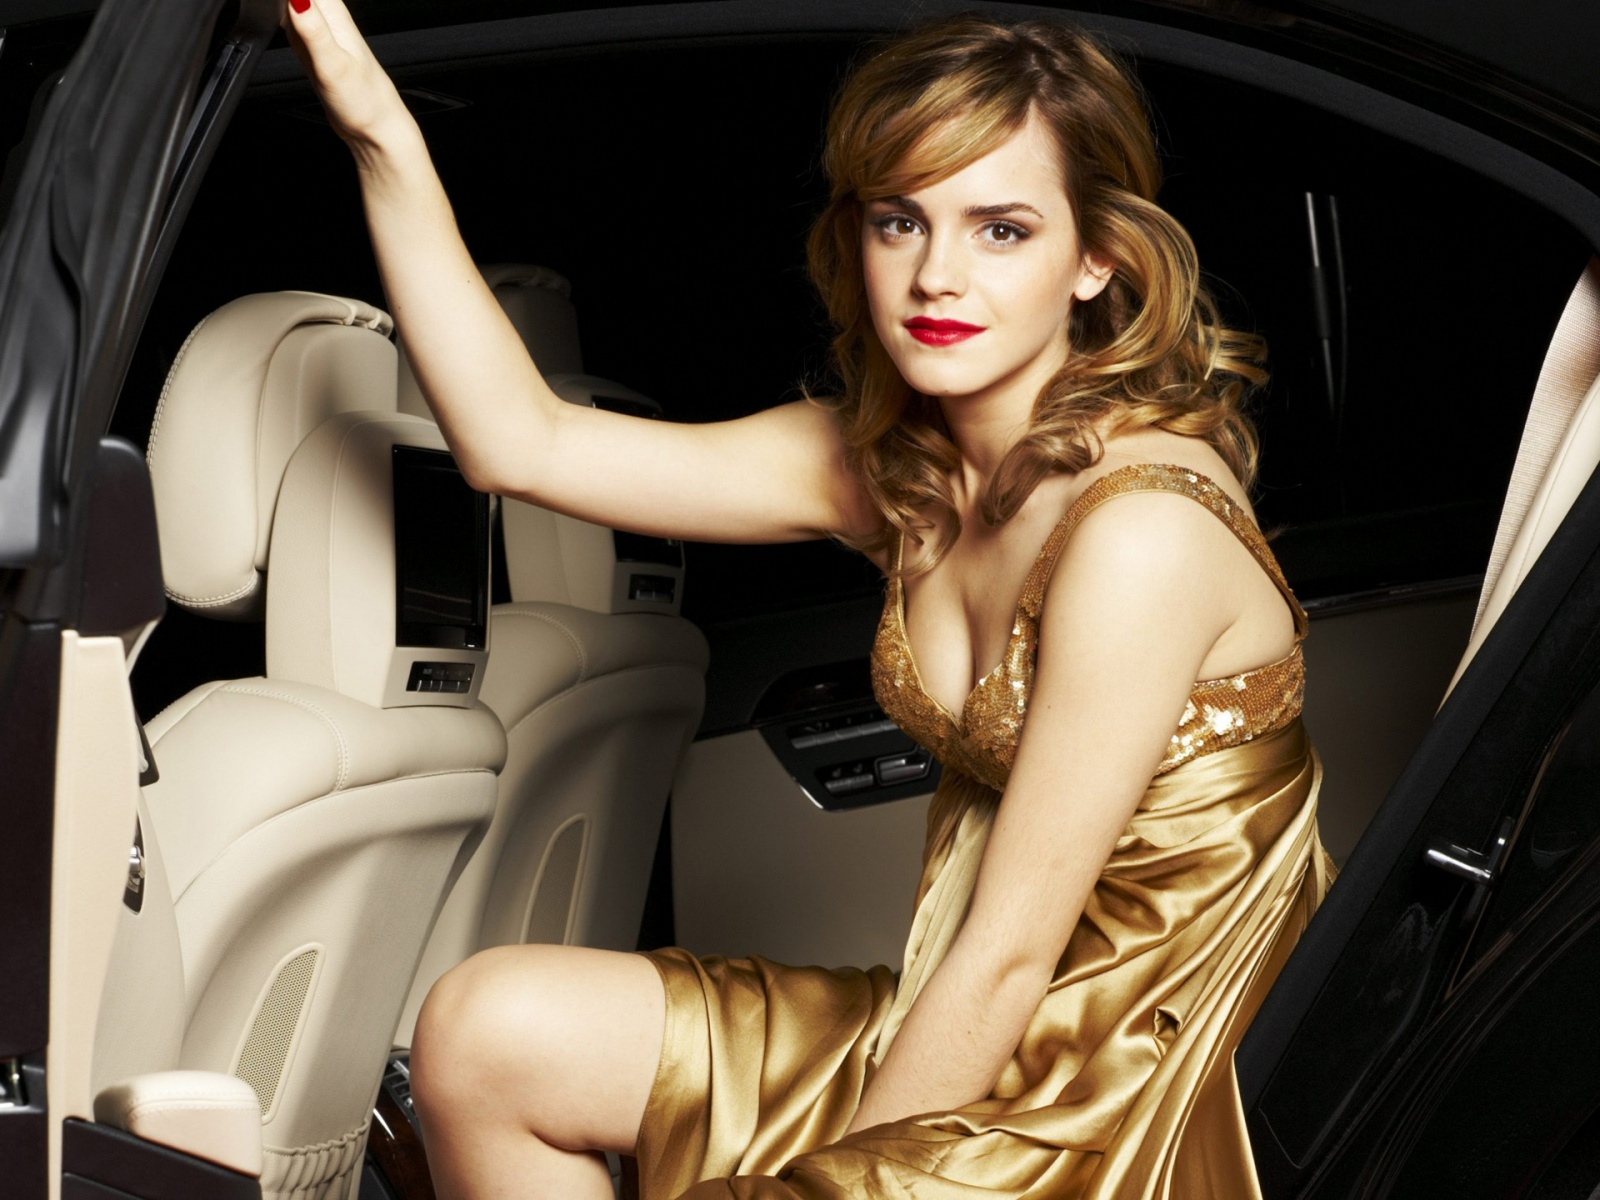 http://3.bp.blogspot.com/-vXIfN2l09qY/UB-tY4ZoAUI/AAAAAAAANaI/2Mt_fEJ8rXc/s1600/The-best-top-desktop-emma-watson-wallpapers-emma-watson-wallpaper-hd-7.jpg